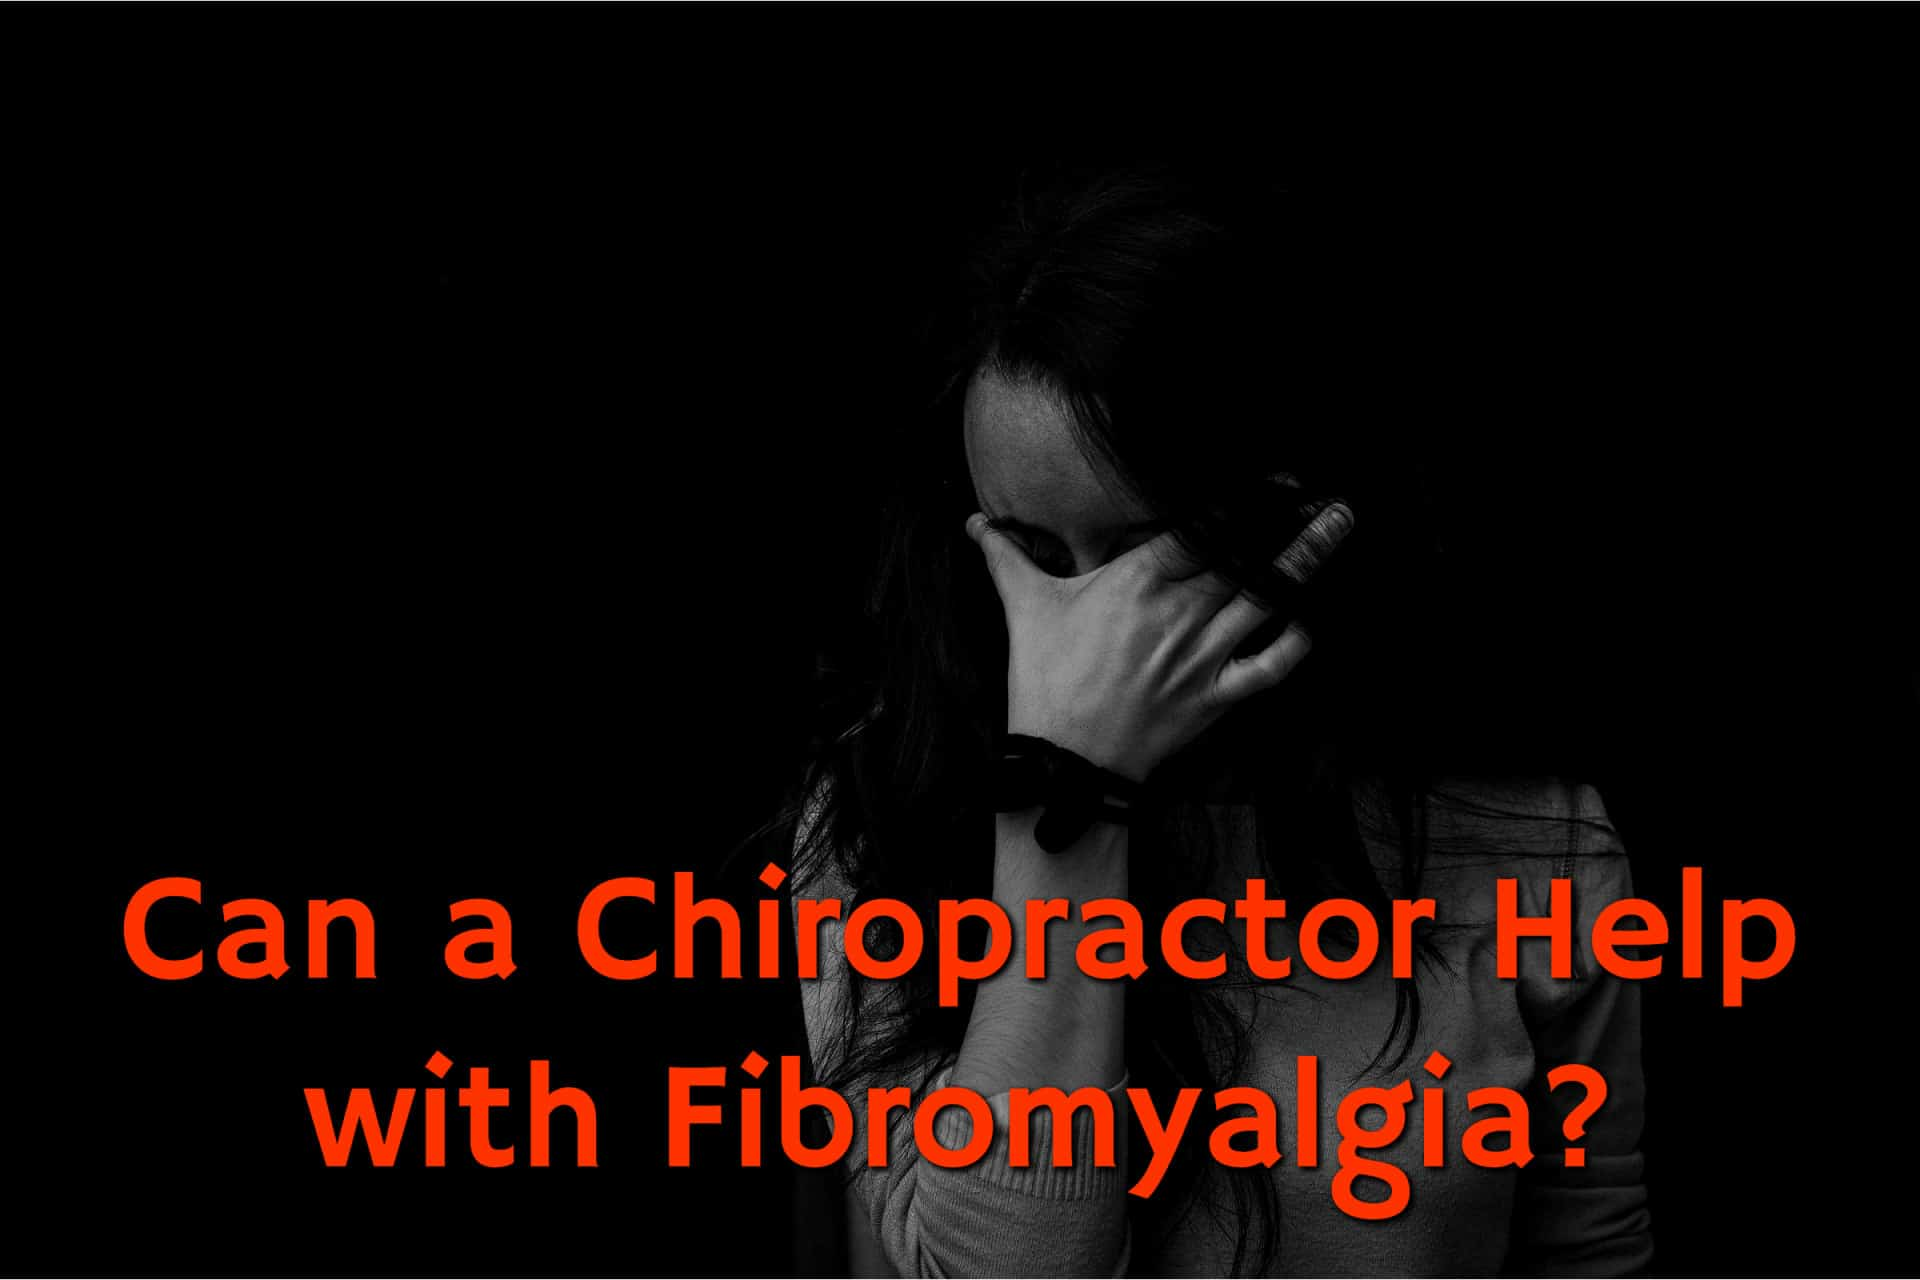 Can a Chiropractor Help my Fibromyalgia?